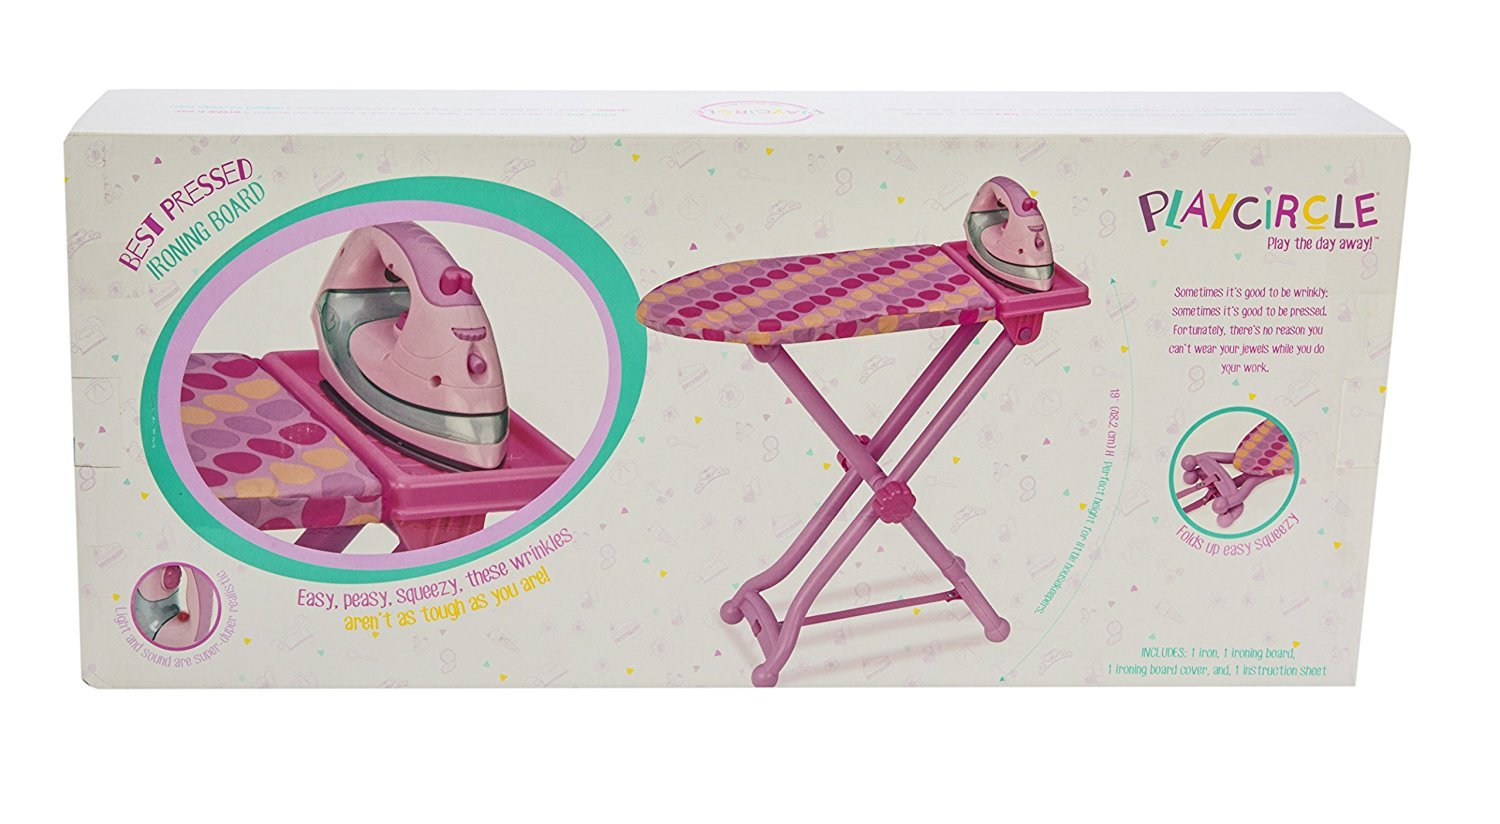 Play Circle: Iron & Ironing Board - Roleplay Set image